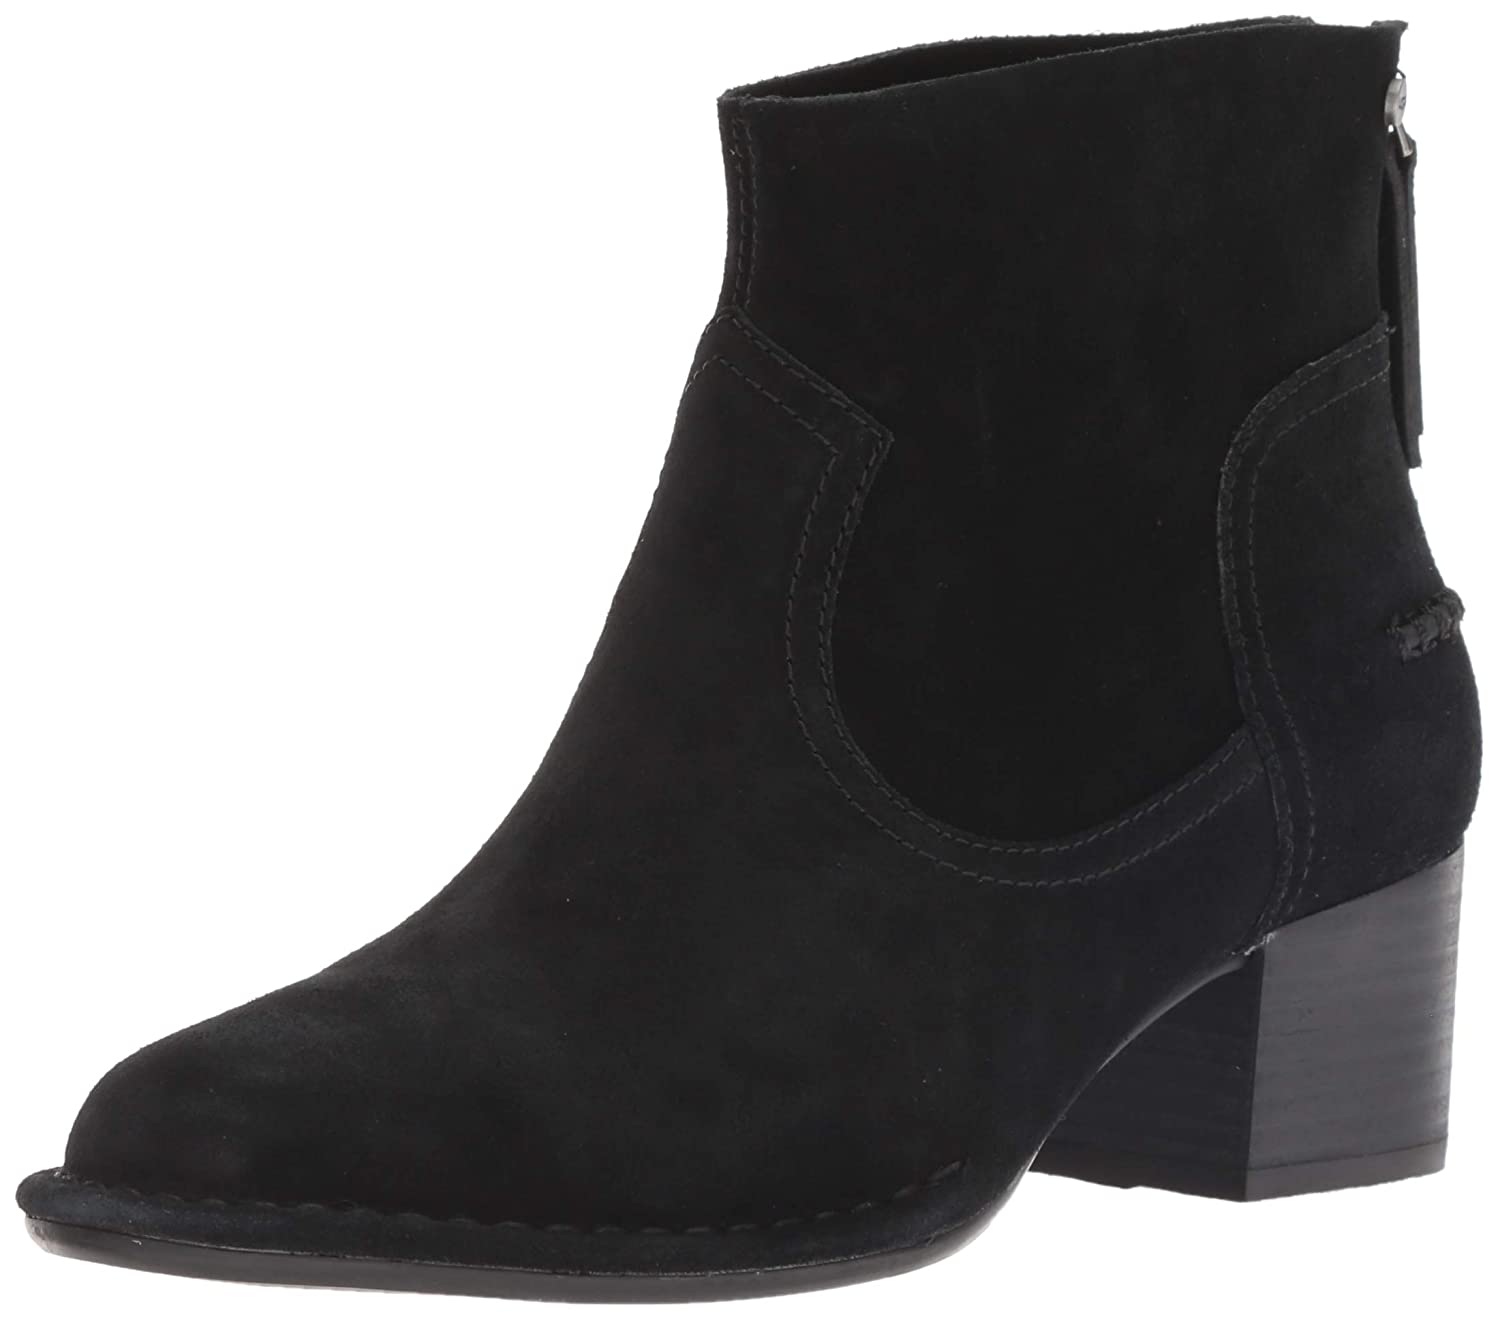 d6414977c90 UGG Womens 1095053 Bandara Ankle Boot: Amazon.co.uk: Shoes & Bags